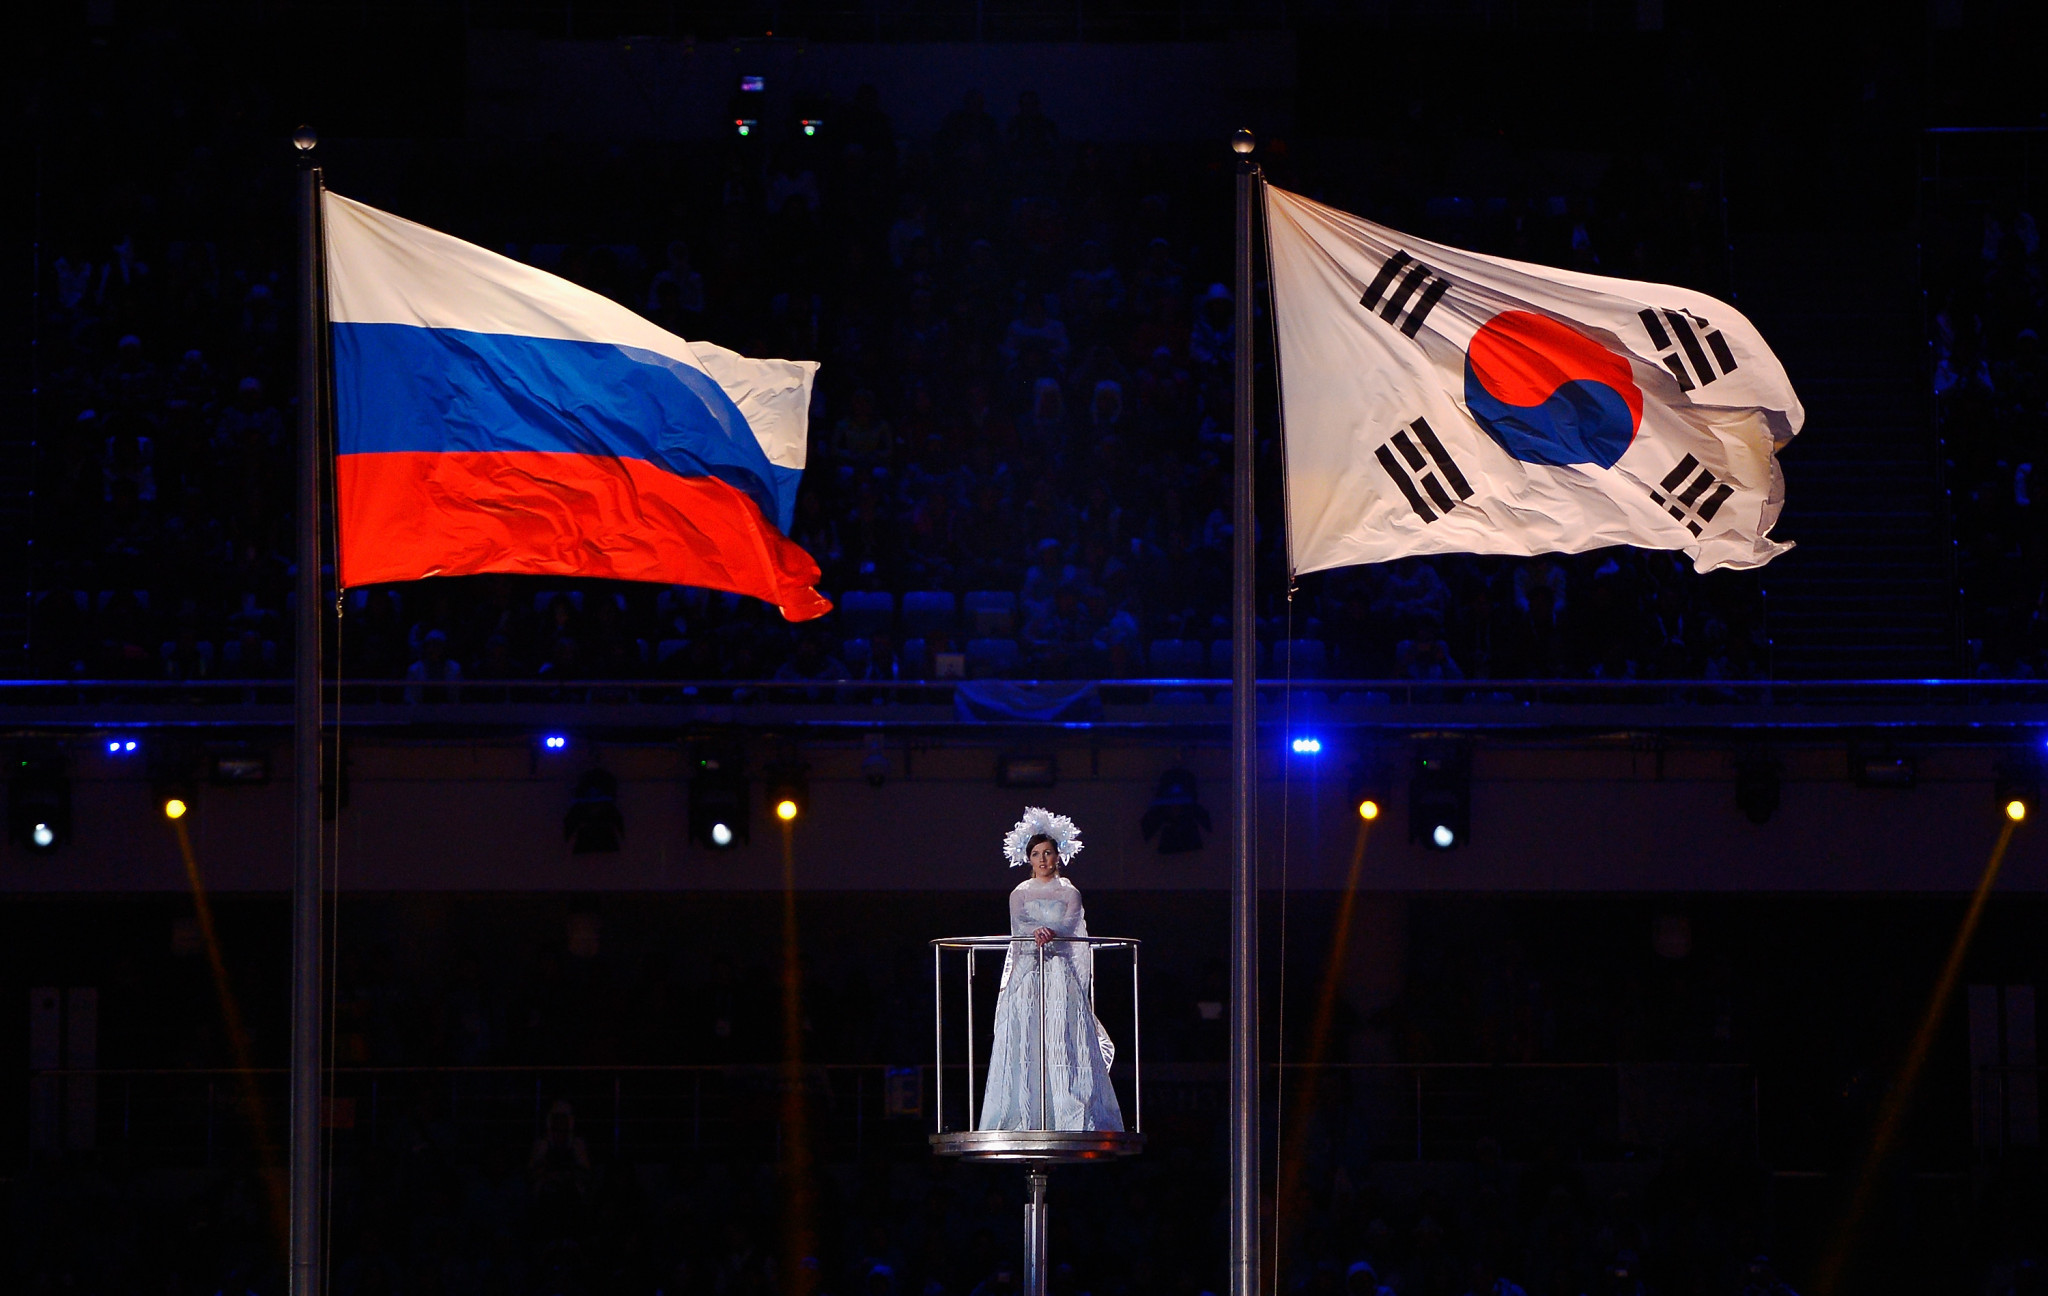 Russian athletes will be able to compete as neutrals qualification events for Pyeongchang 2018 ©Getty Images